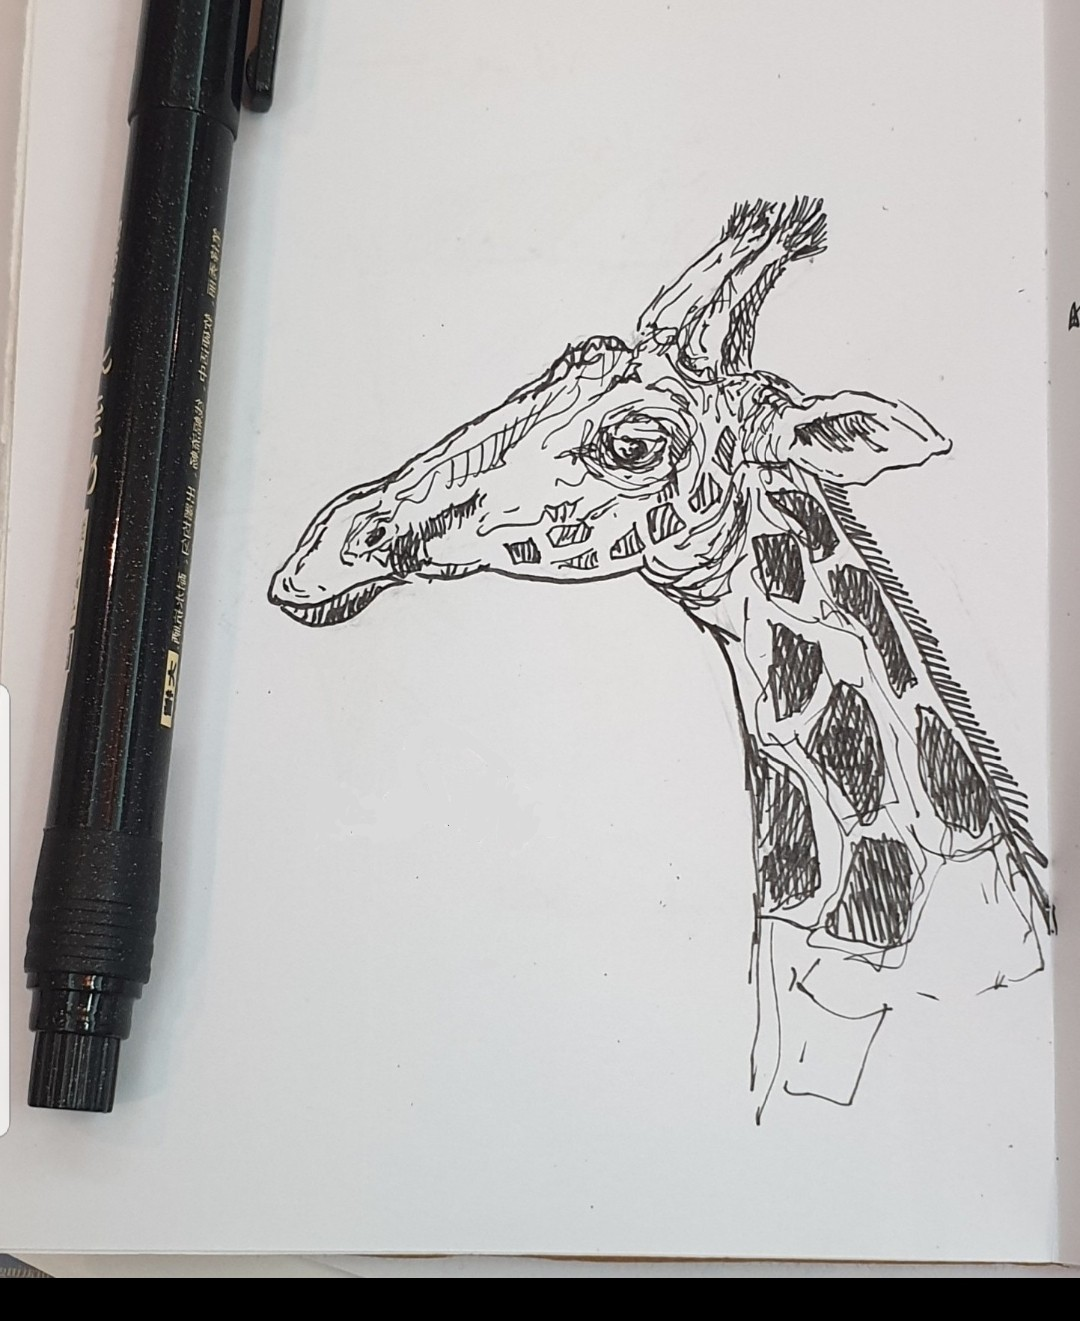 Ali radwani drawing giraffe sketch challenge 1hour1sketch pen pencil